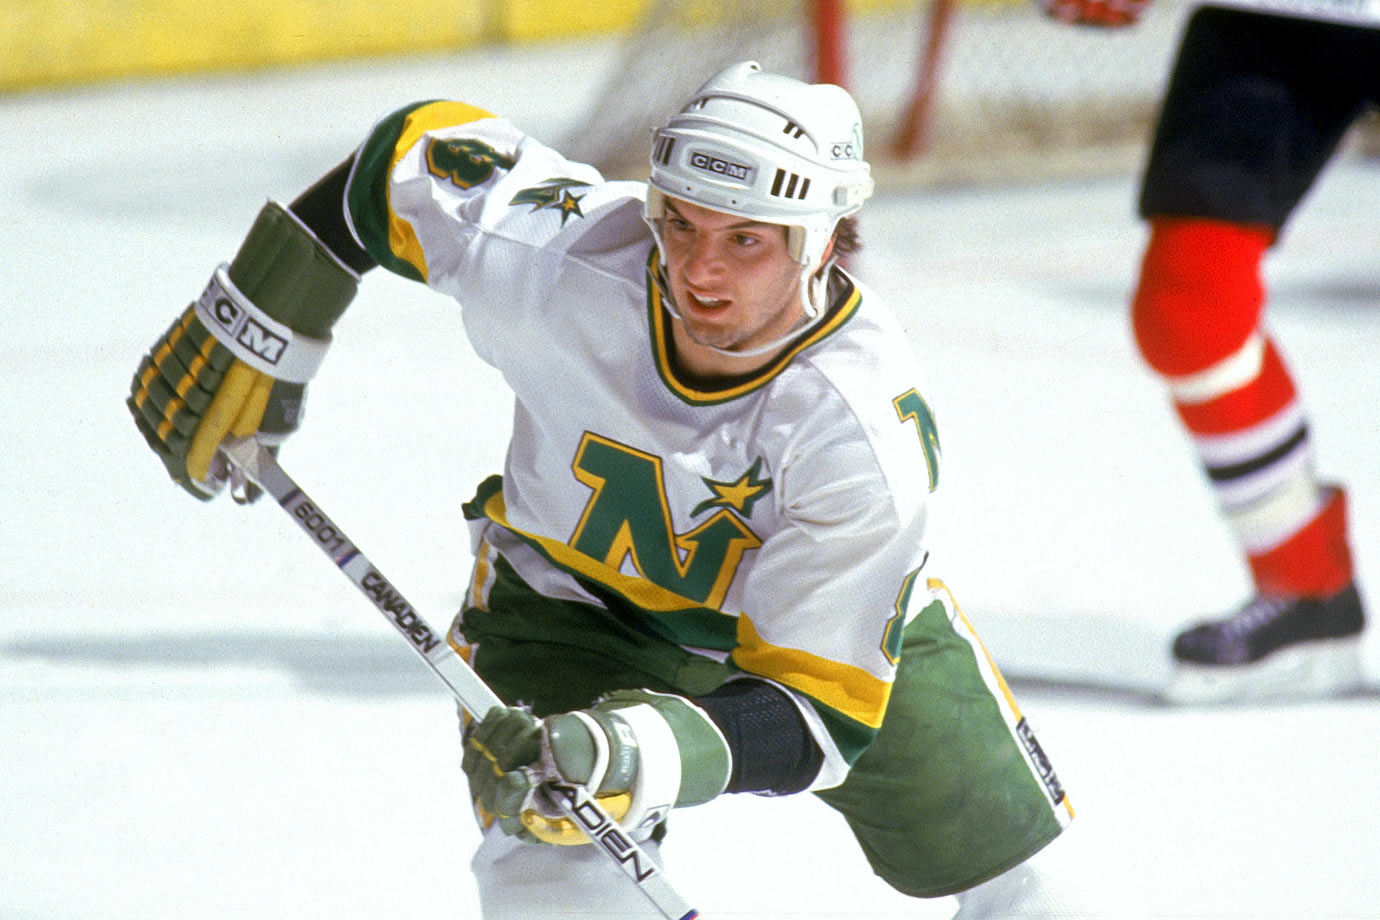 <p>Lawton never amounted to much in the NHL, scoring just 266 points in 483 games. His best season came in 1986-87, when he scored 21 goals and 23 assists in 66 games. — Notable picks: No. 2: Sylvain Turgeon, LW, Hartford Whalers | No. 3: Pat LaFontaine, C, New York Islanders | No. 4: Steve Yzerman, C, Detroit Red Wings | No. 5: Tom Barrasso, G, Buffalo Sabres | No. 9: Cam Neely, RW, Boston Bruins | No. 108: Kevin Stevens, LW, Los Angeles Kings | No. 121: Rick Tocchet, RW, Philadelphia Flyers | No. 199: 	Dominik Hasek, G, Chicago Blackhawks</p>